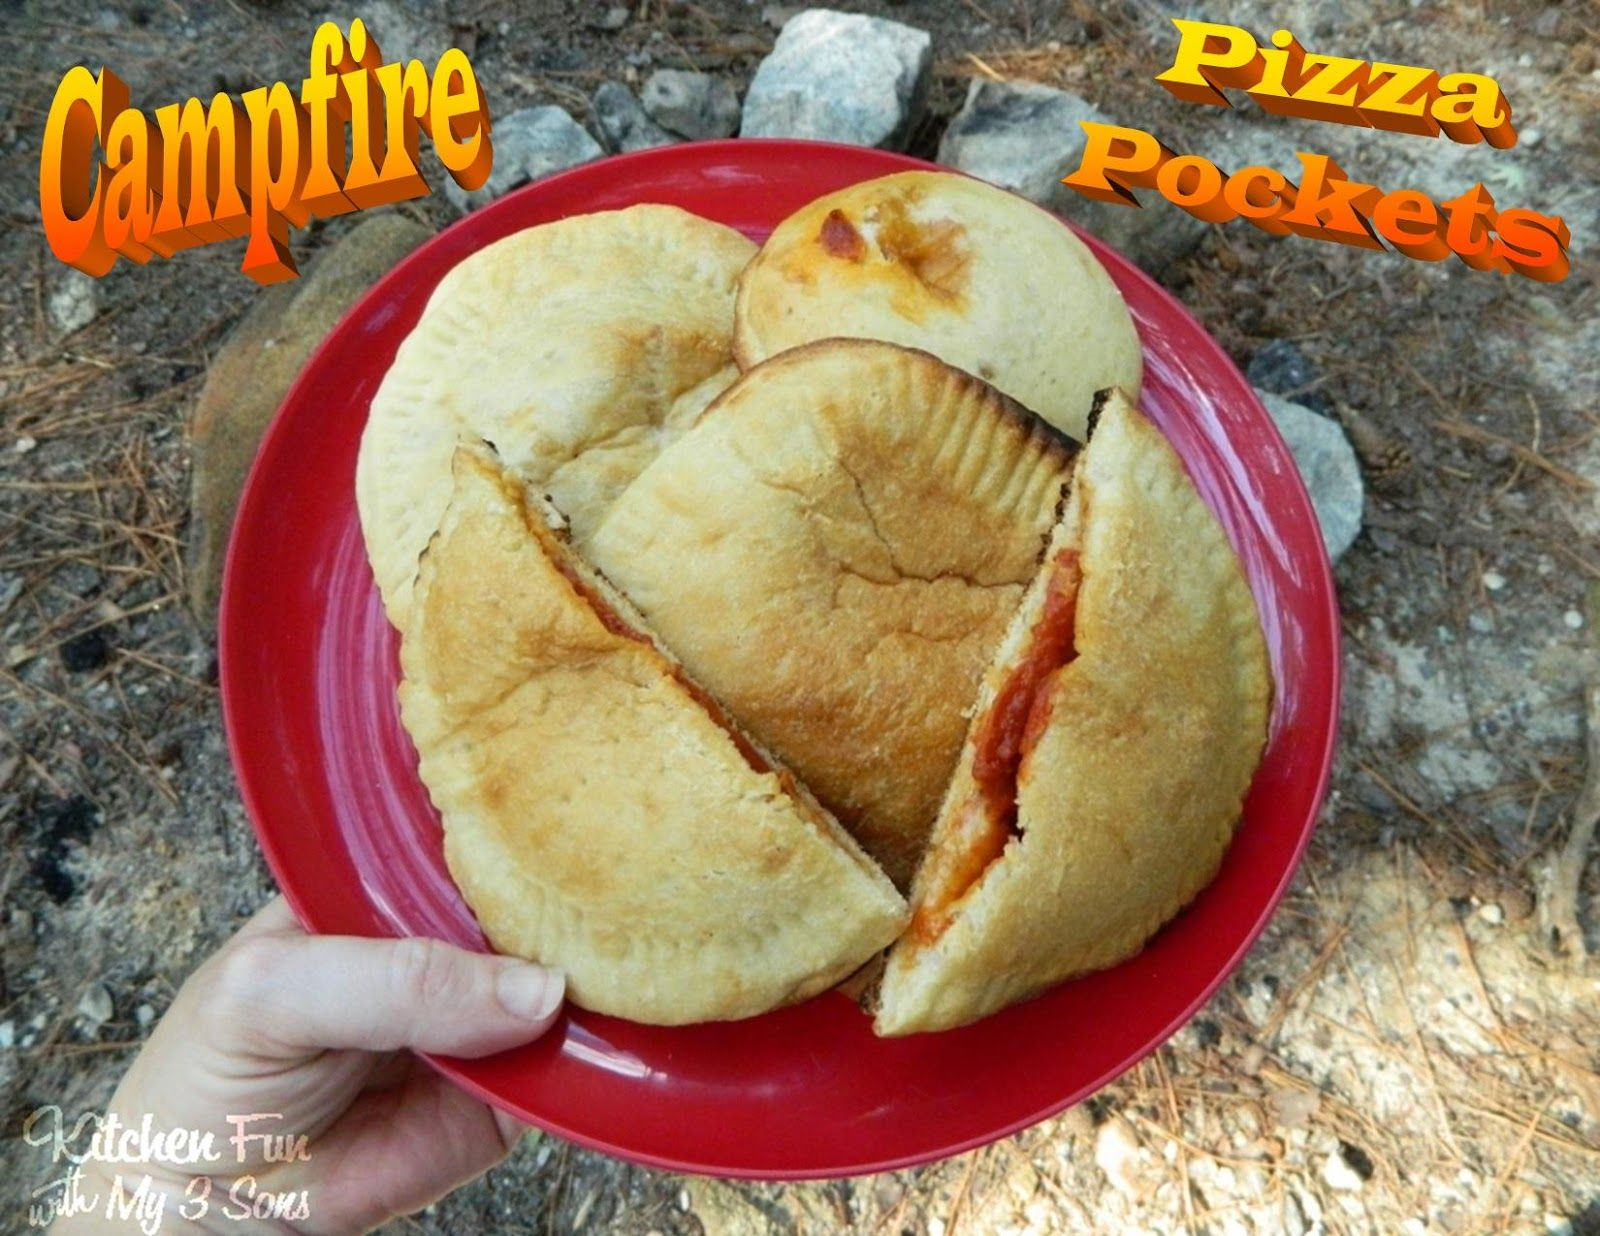 Your Kids Will Love These Awesome Camping Recipes Treats And All Of Them Are Very Easy To Make Some Can Be Made Ahead Time Just Heated Up On The